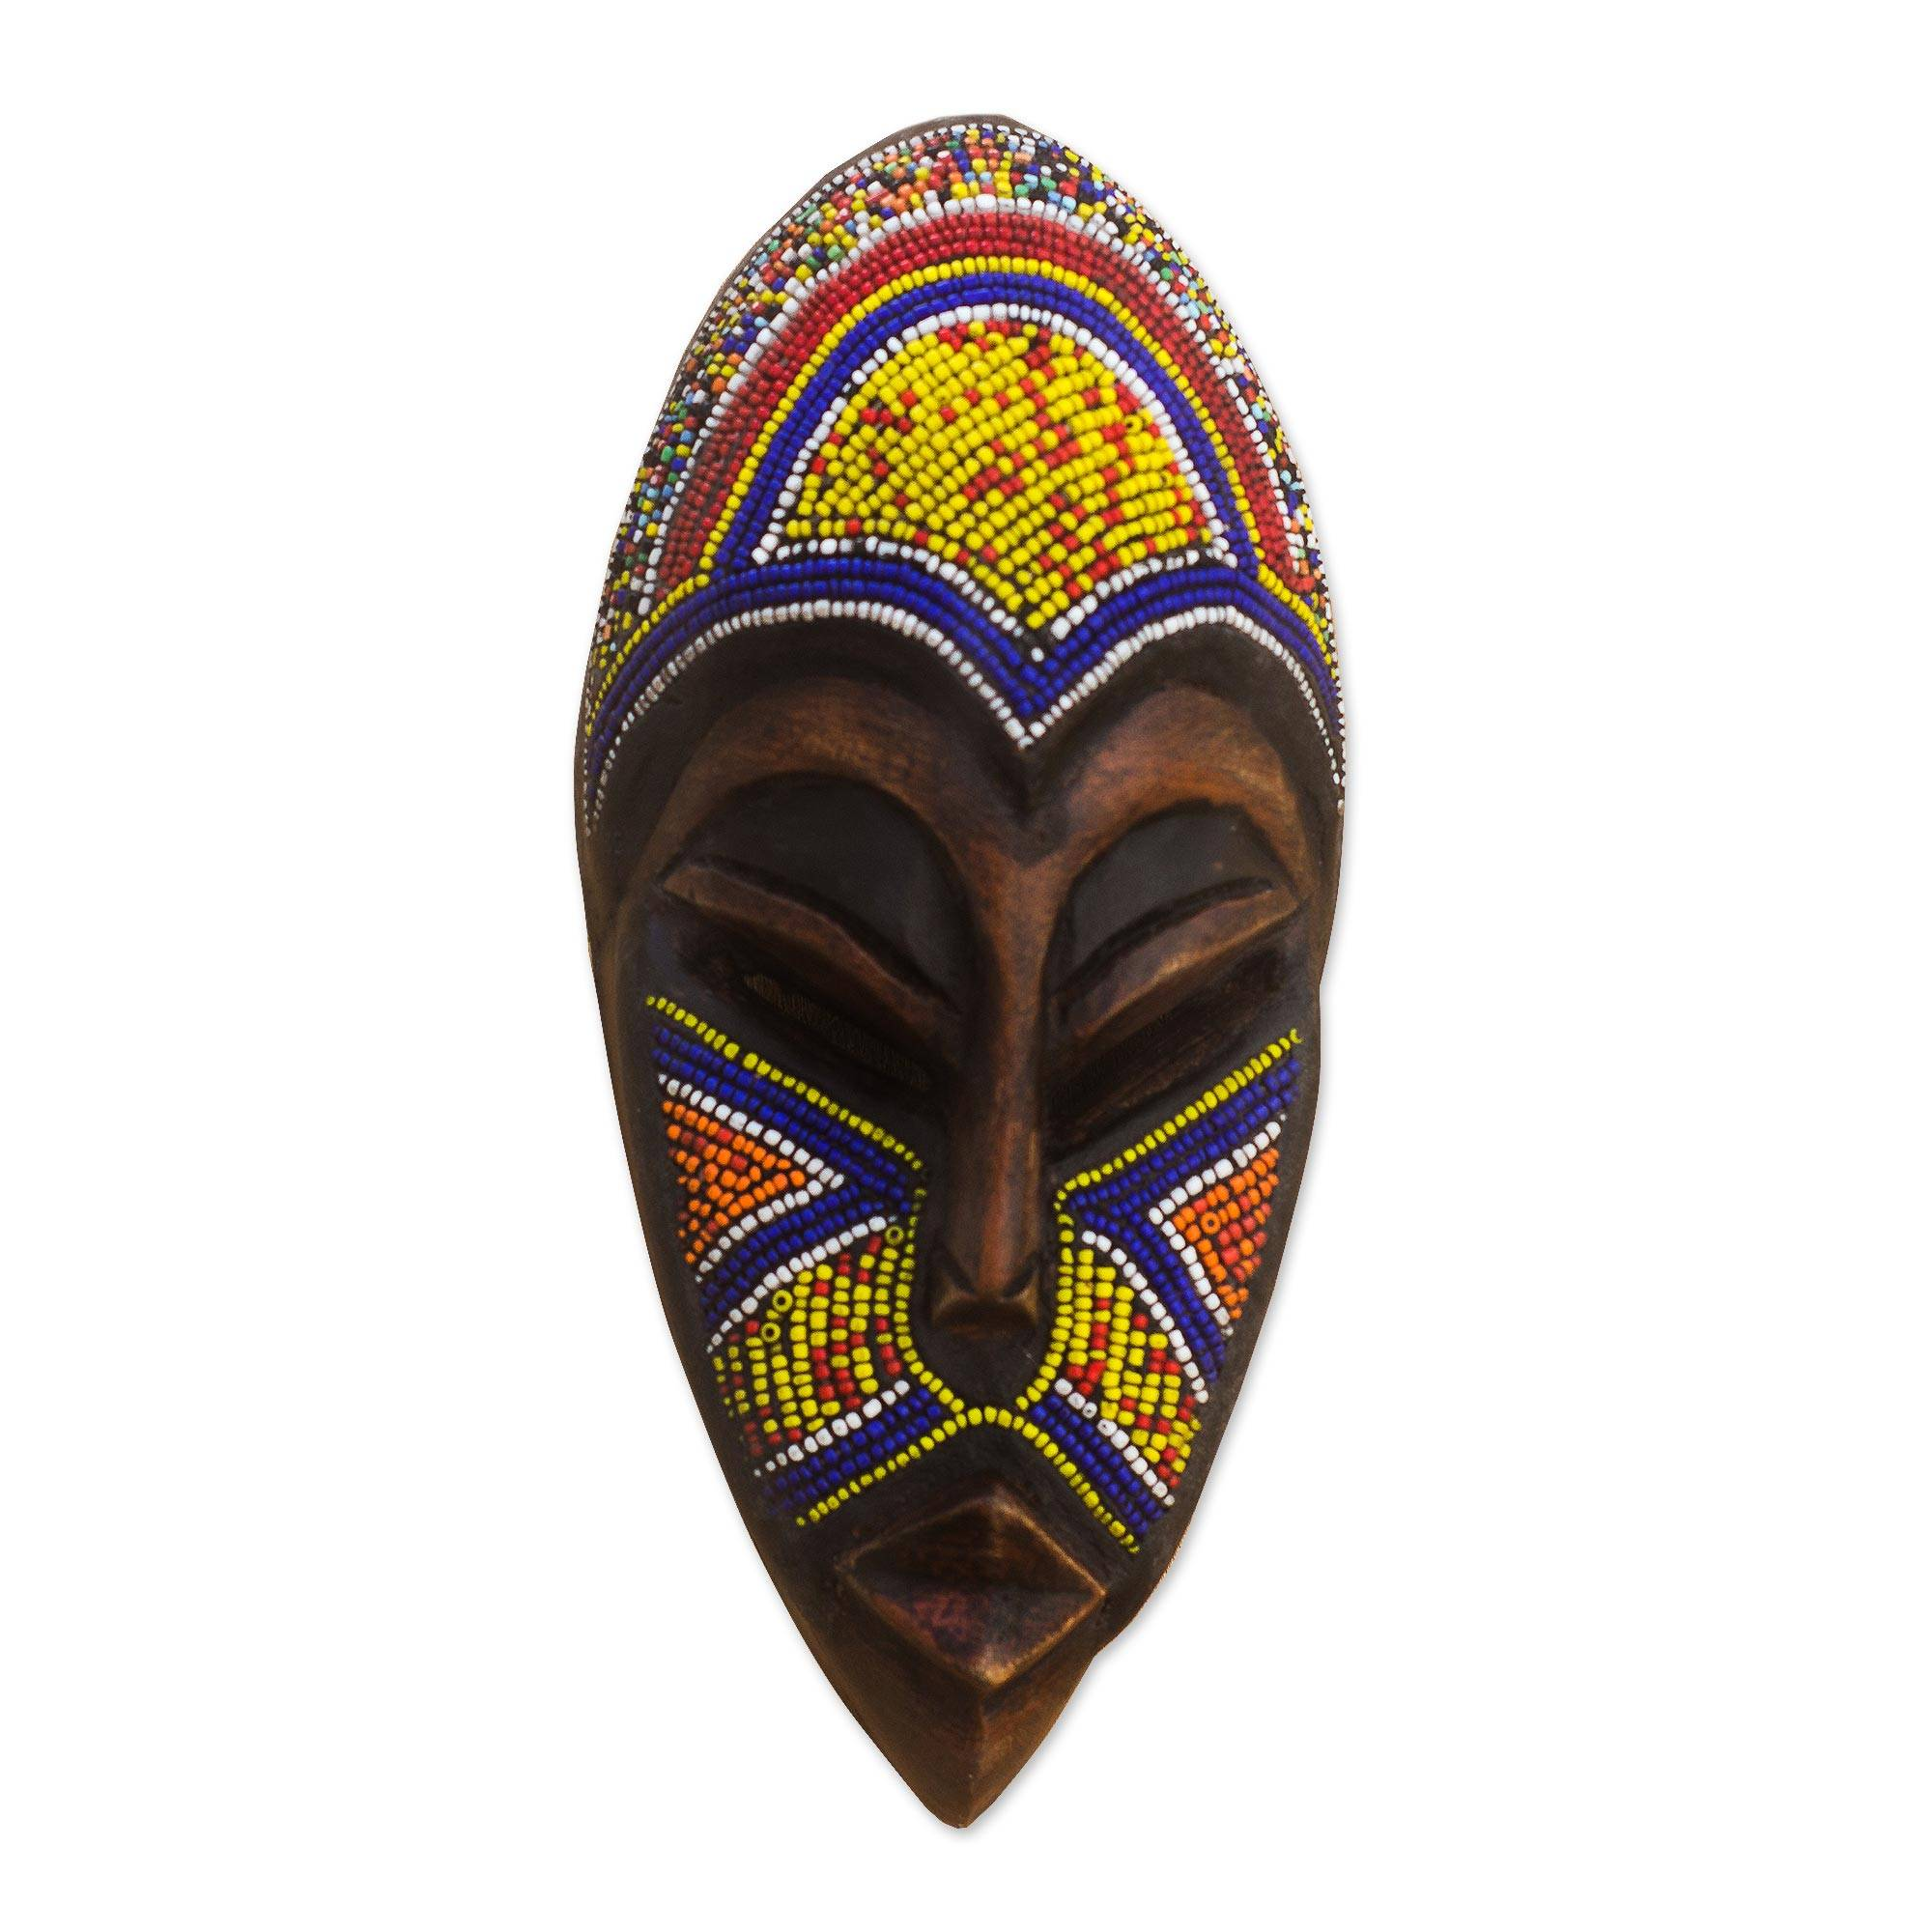 Colorful African Mask With Recycled Glass